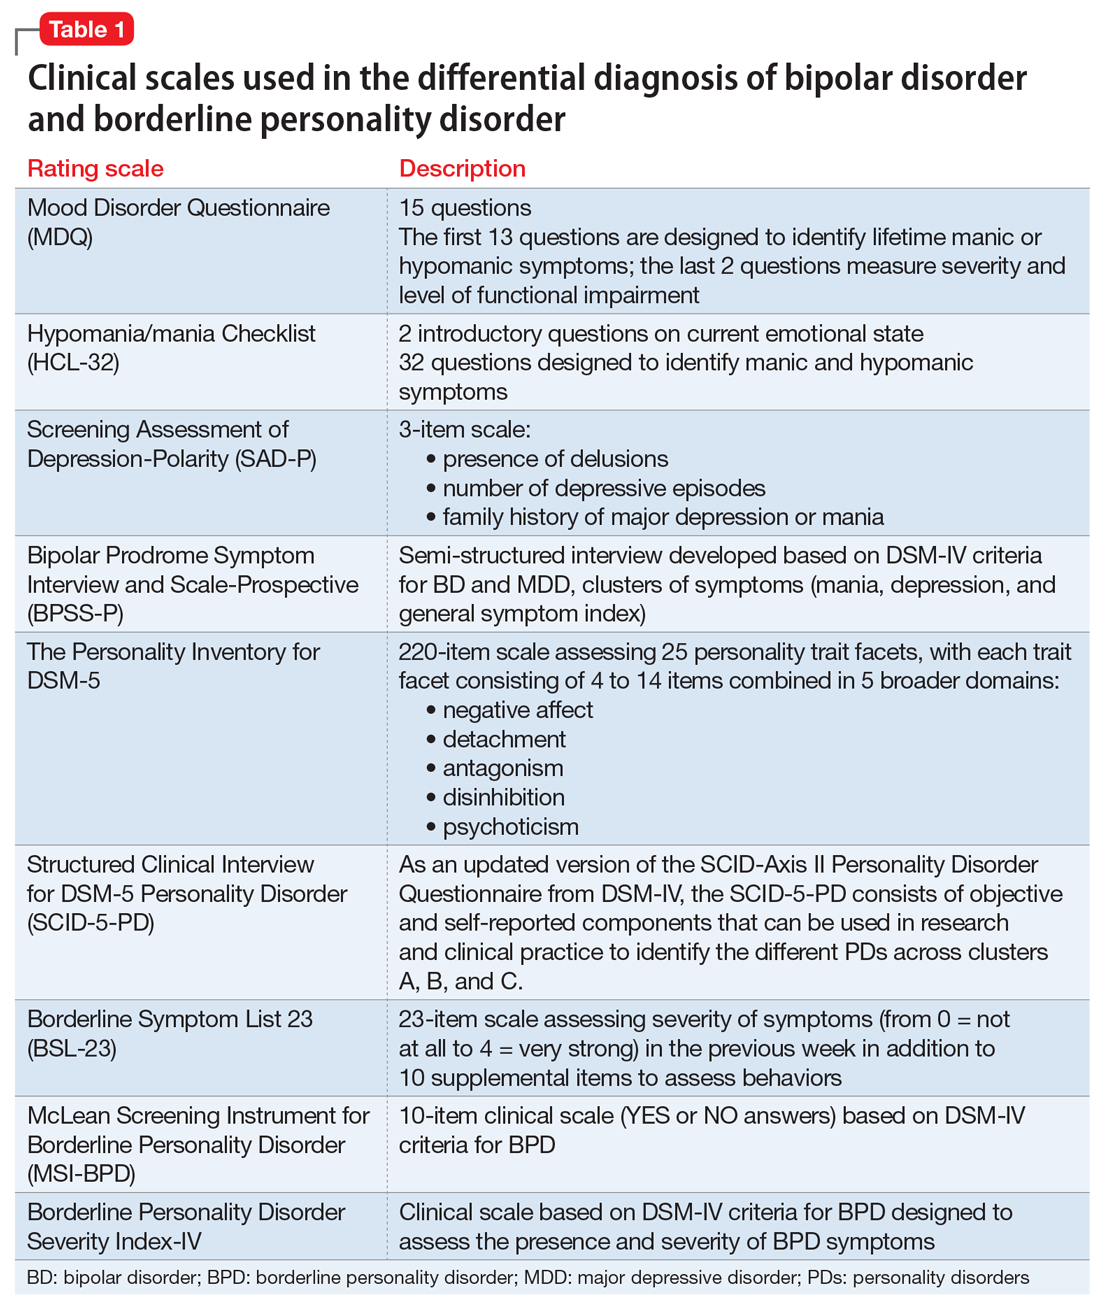 Clinical scales used in the differential diagnosis of bipolar disorder and borderline personality disorder